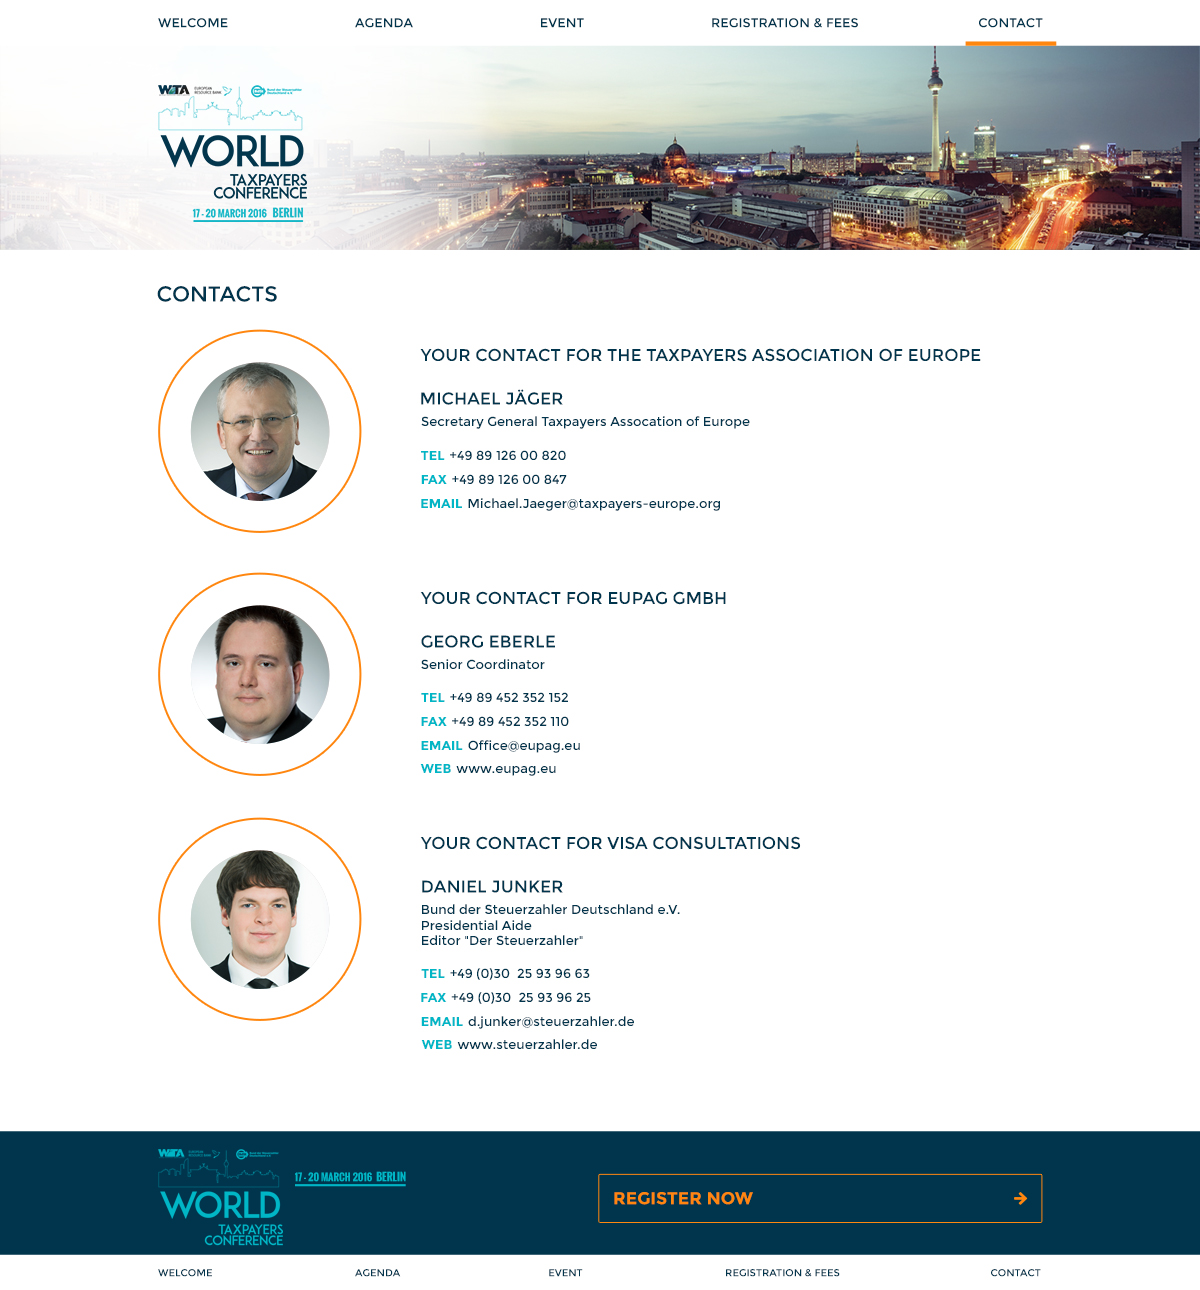 WORLD taxpayers conference